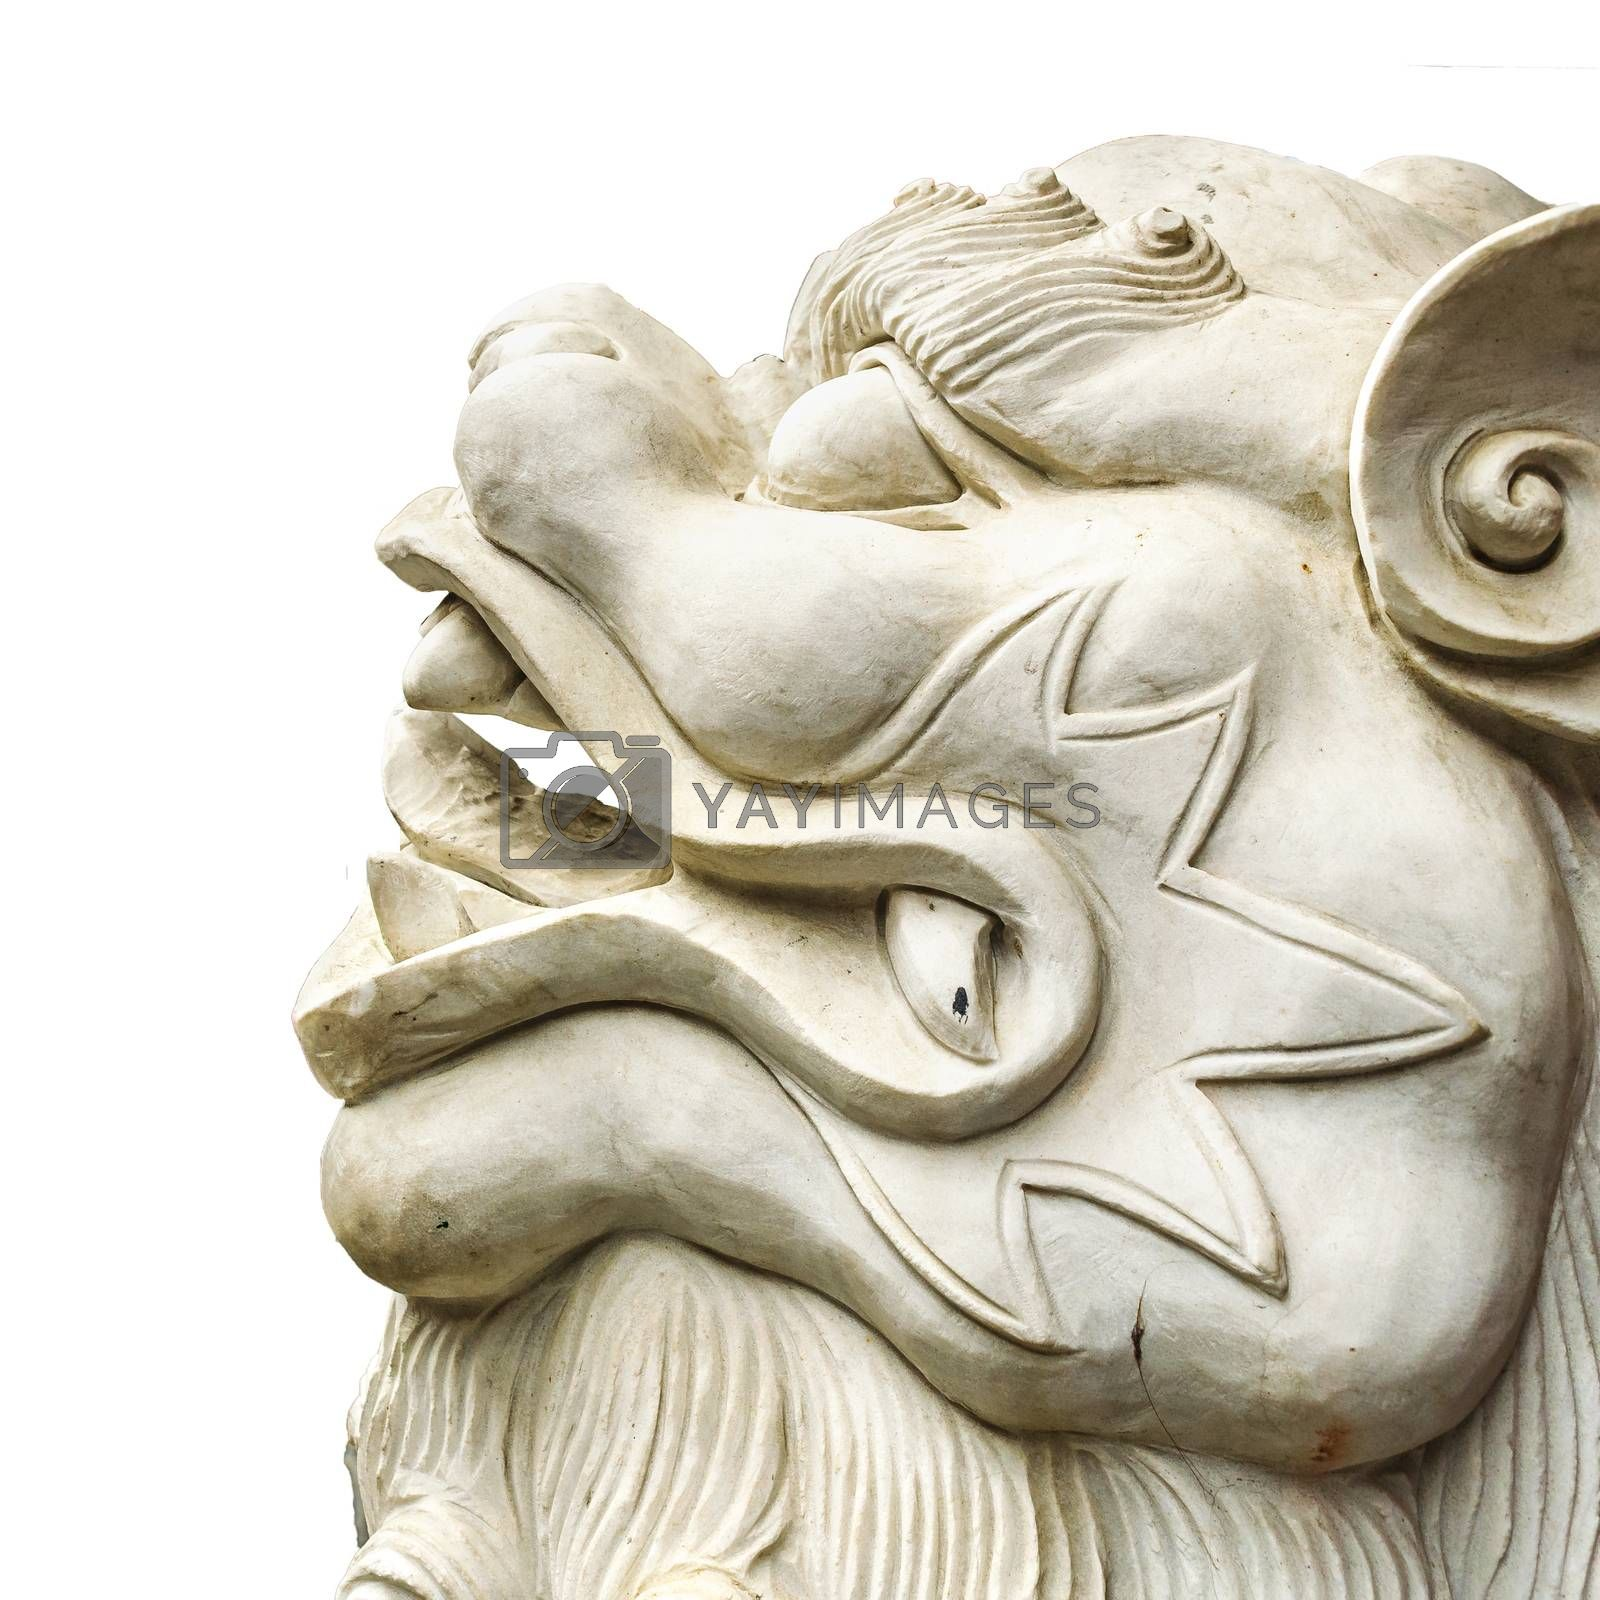 Side View Mythological Lion Sculpture Isolated by DanFLCreative